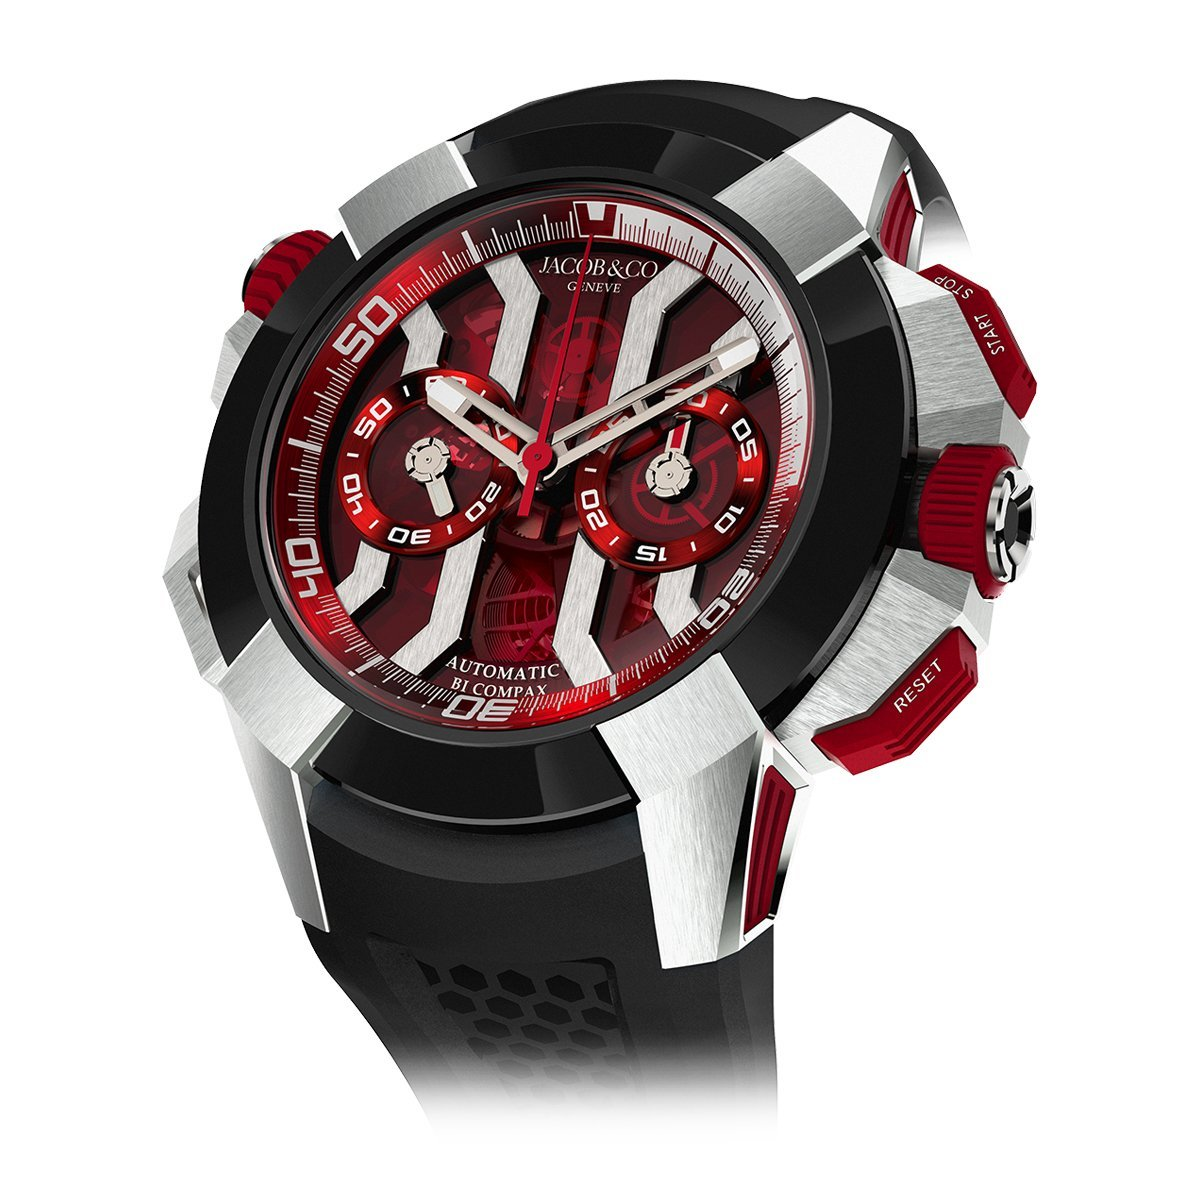 Jacob & Co. Epic X Chronograph White Red - Watches & Crystals